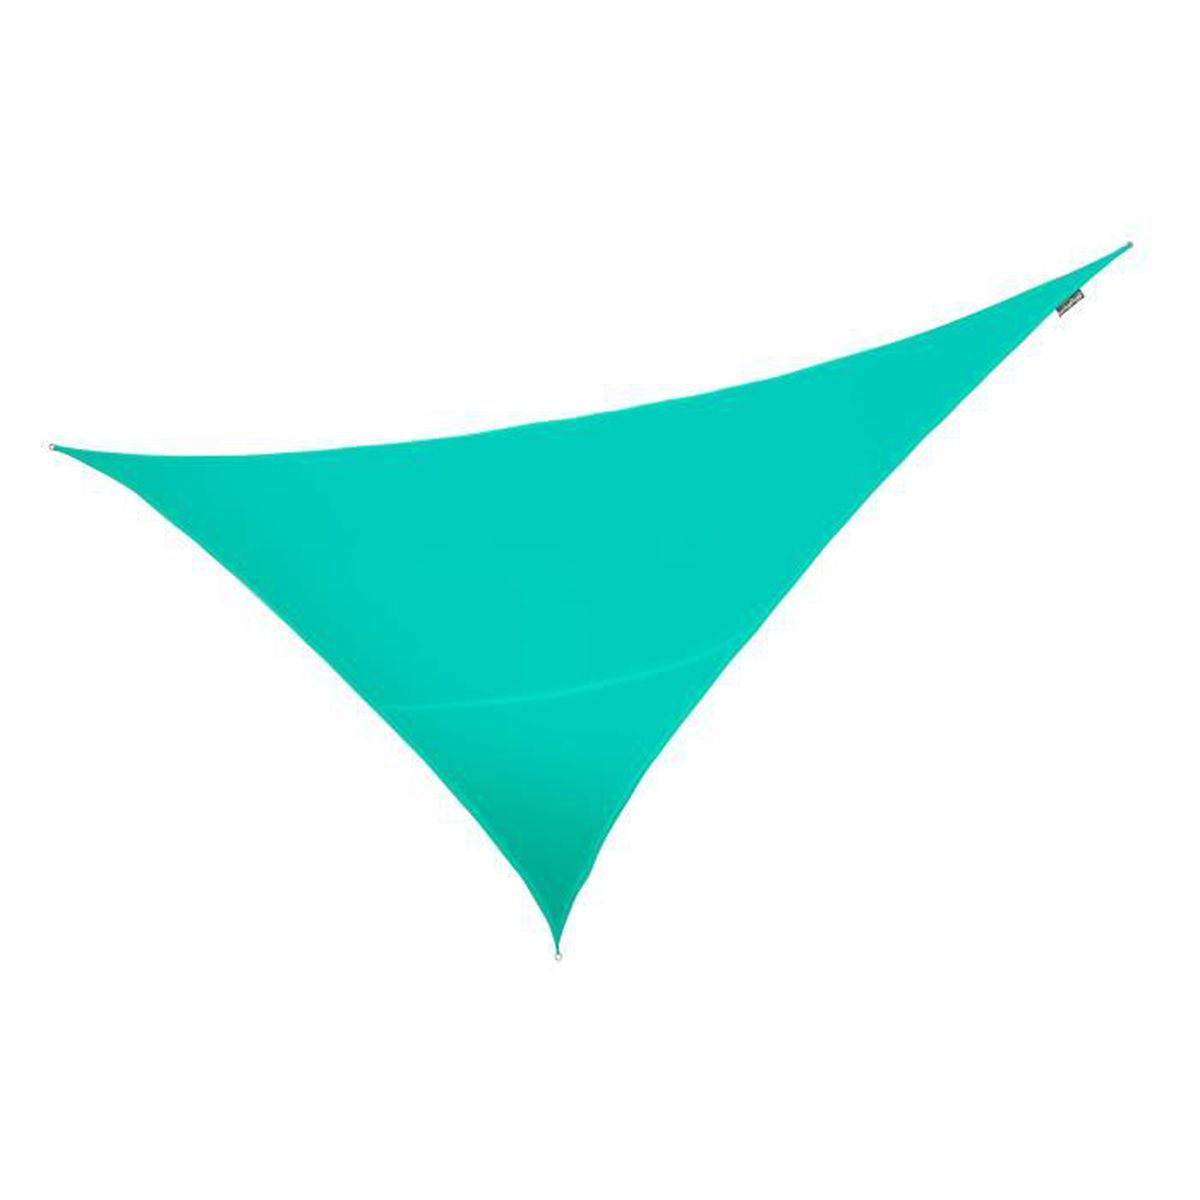 Voile D Ombrage Solide voile d'ombrage turquoise triangle rectangle 4,2m